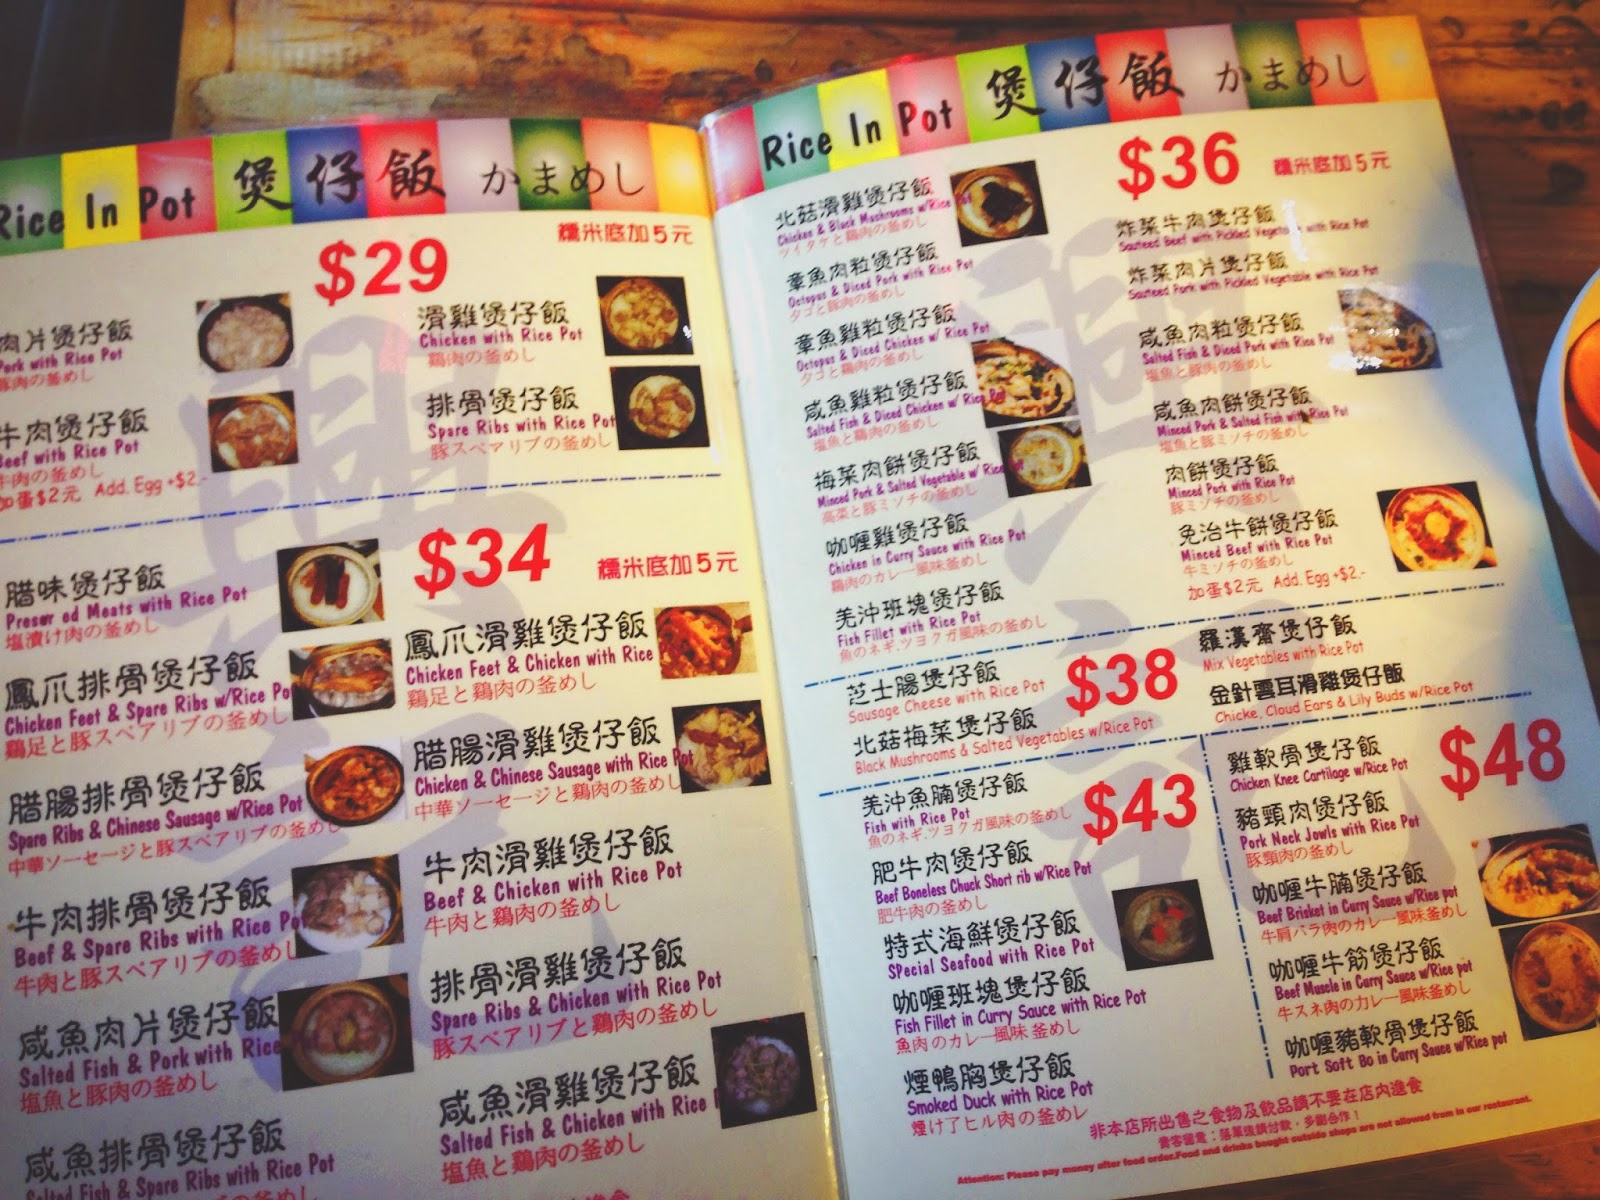 Menu at Hing Kee Claypot Rice Temple St Yau Ma Tei Hong Kong